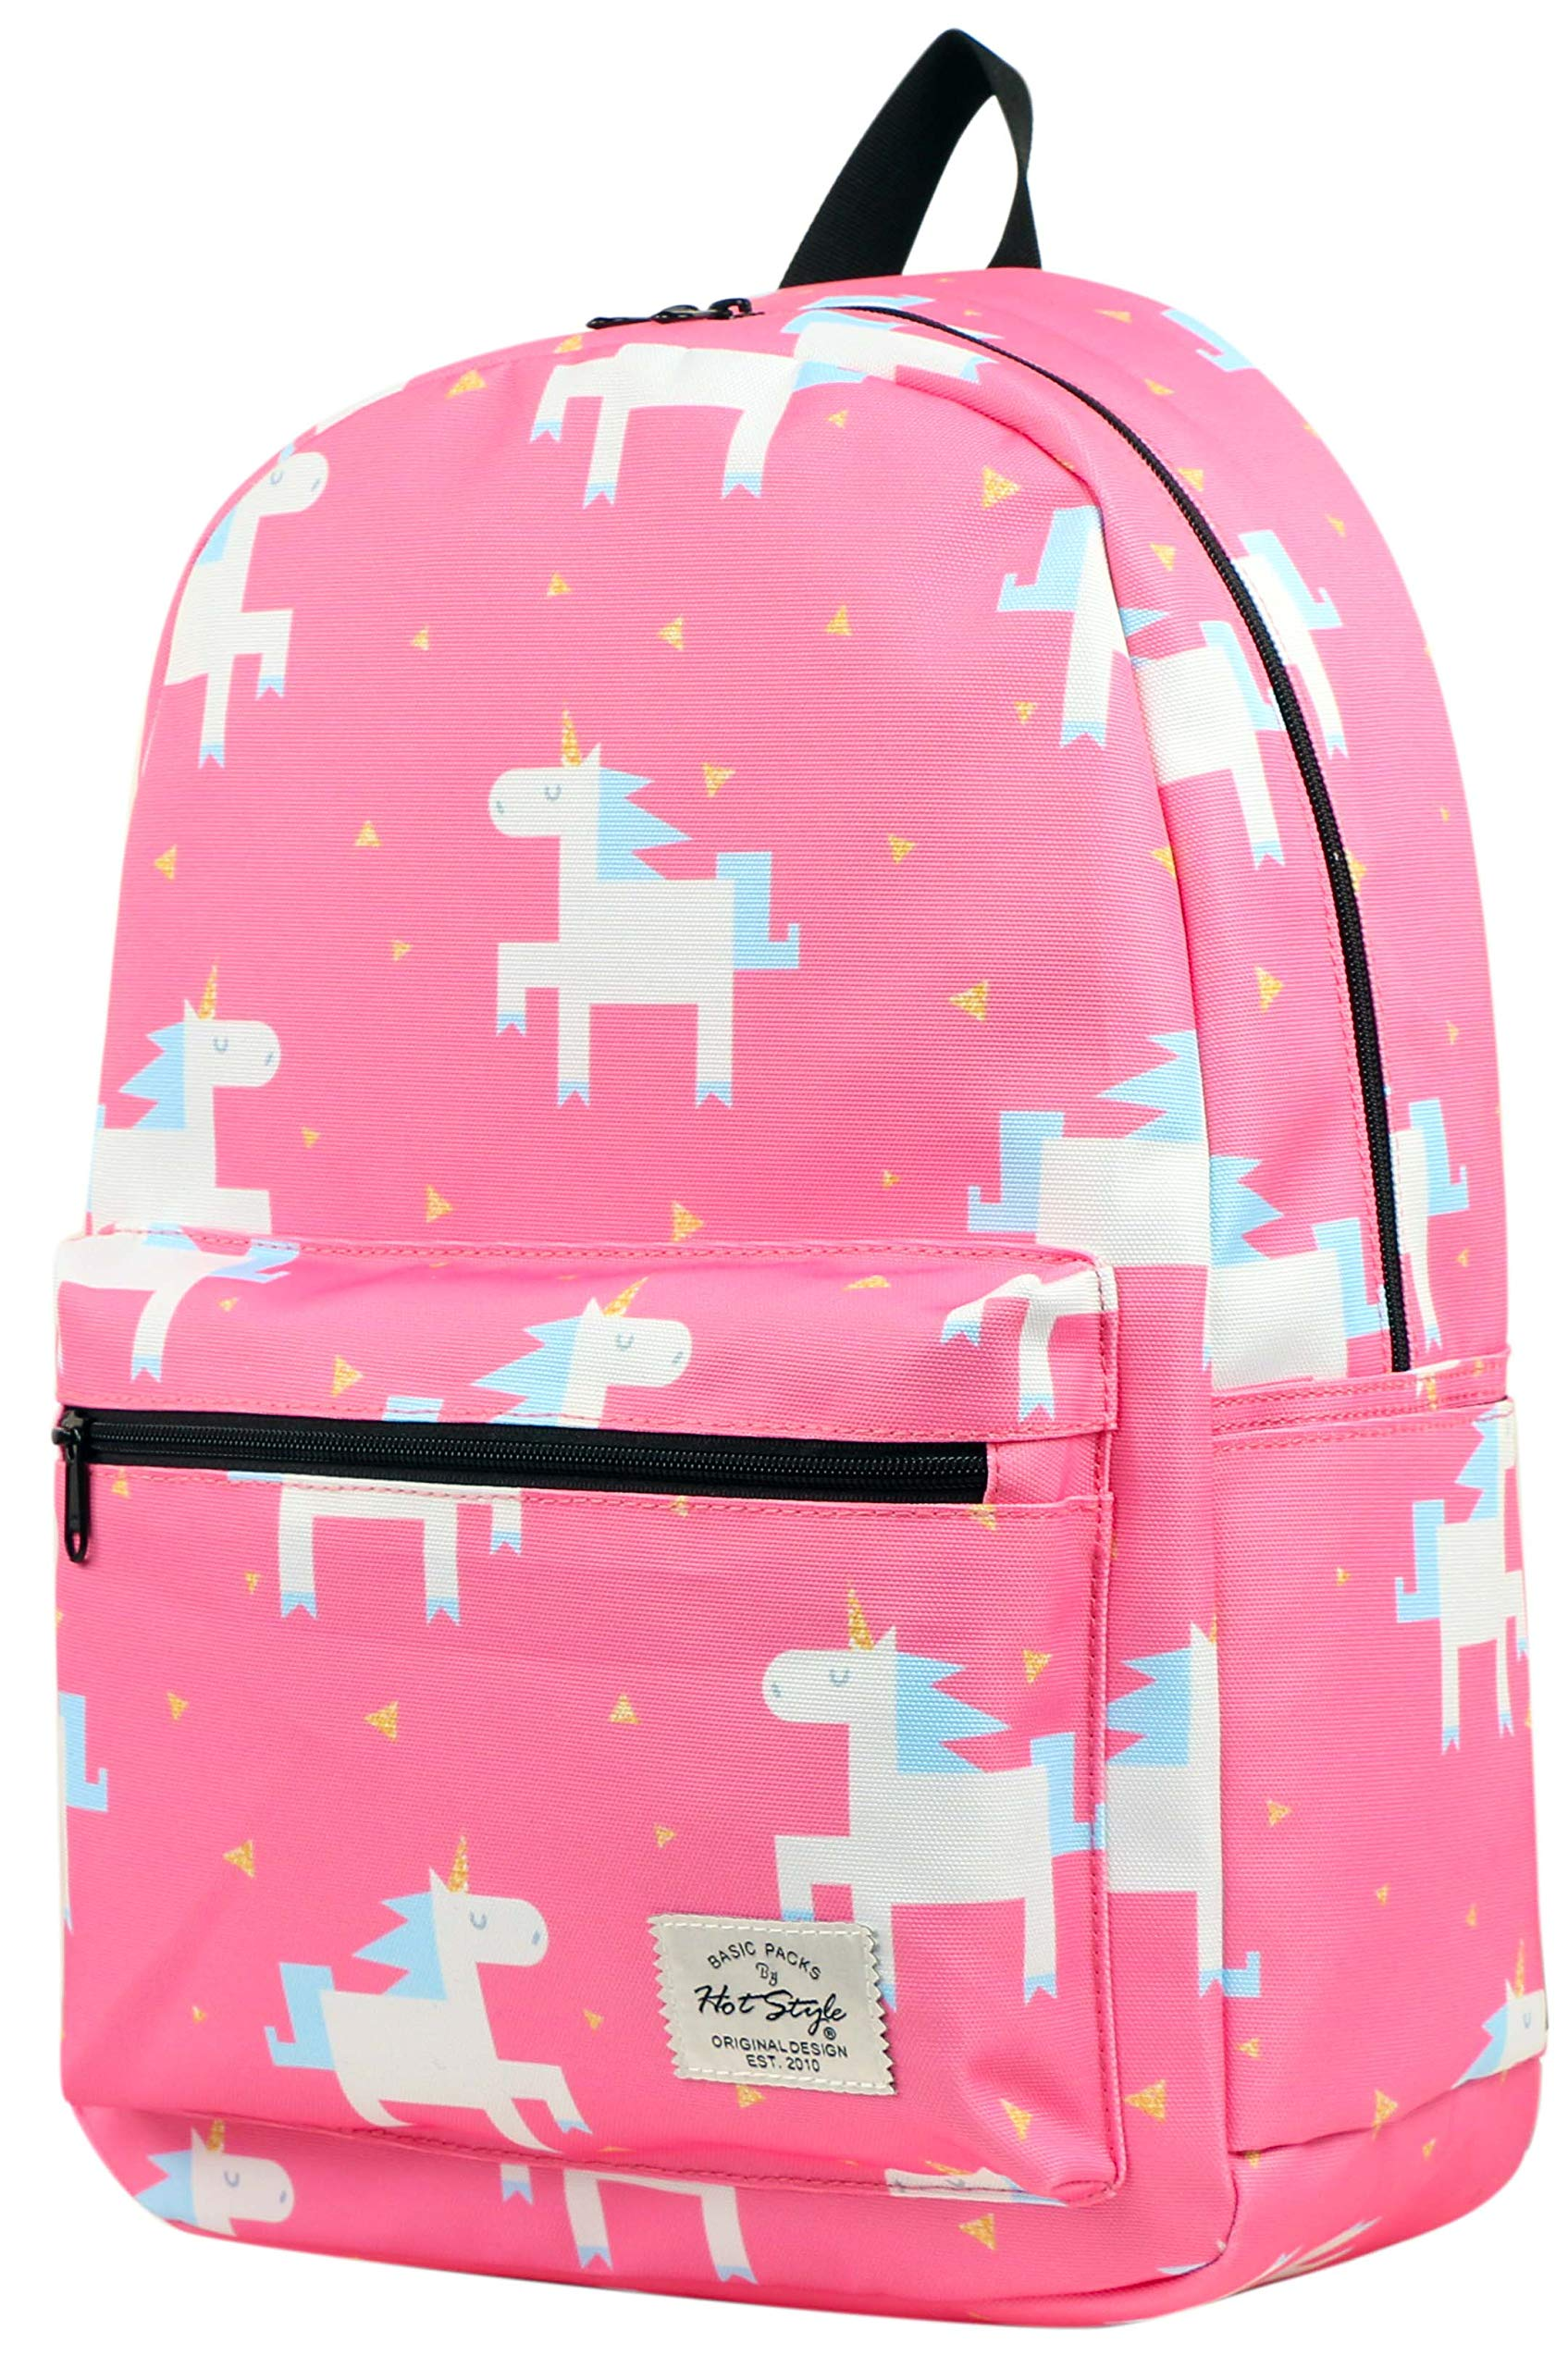 TRENDYMAX Backpack Cute for School | 16''x12''x6'' | Holds 15.4-inch Laptop | Uni-corns, Pink